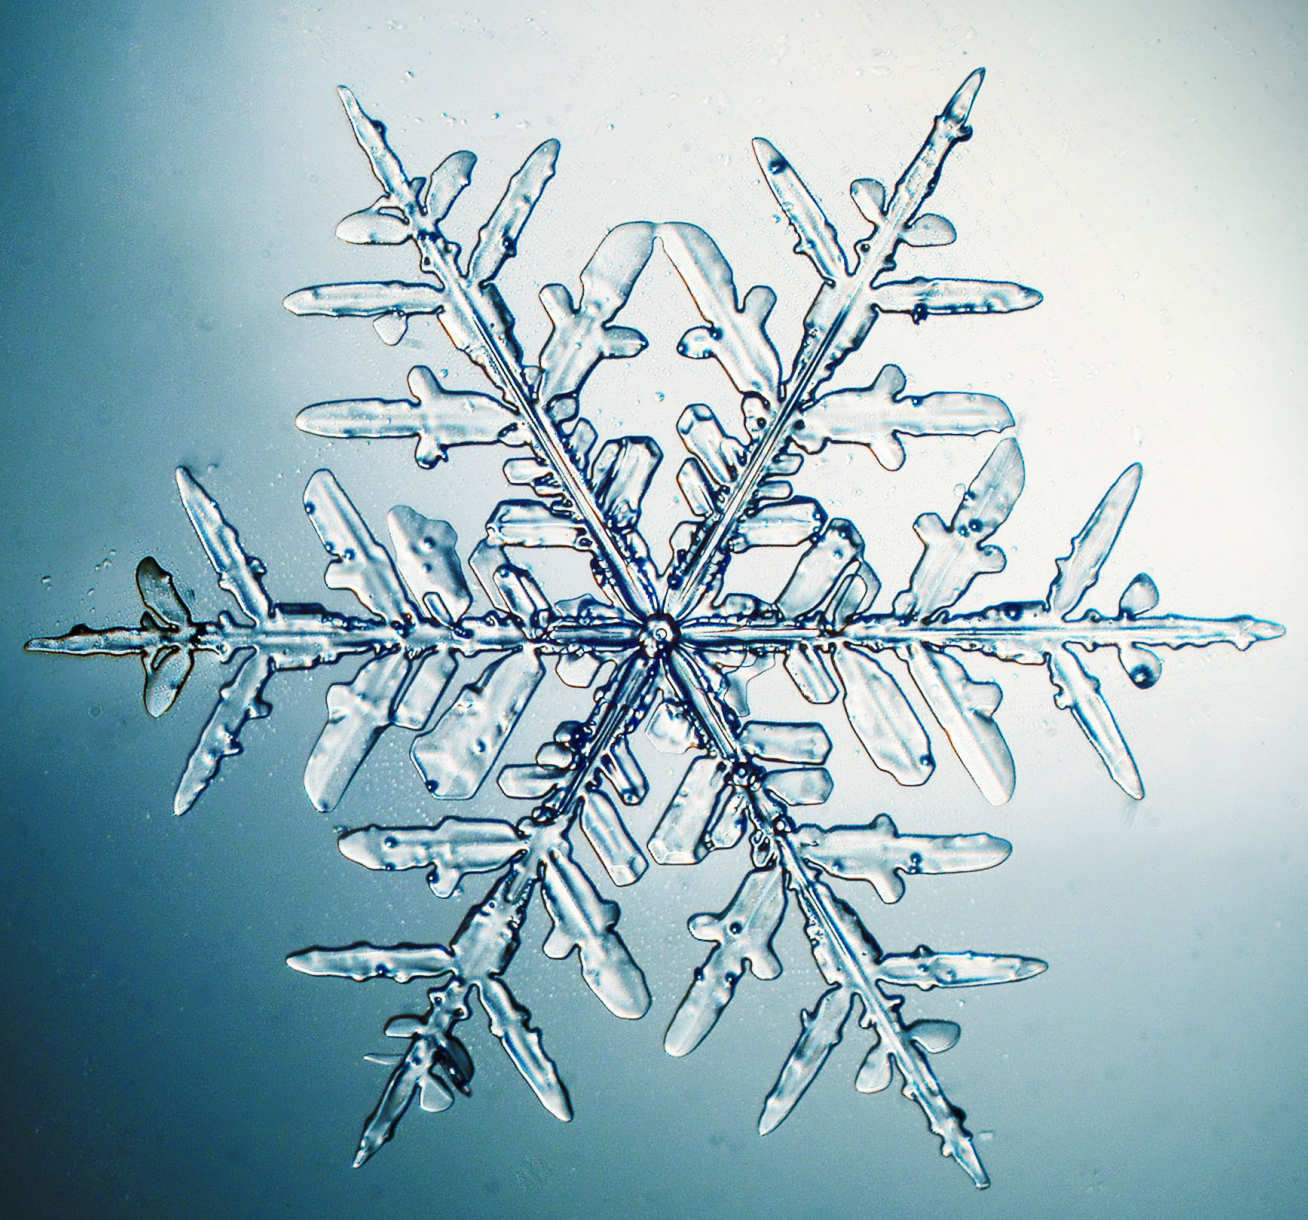 Close up photo of a snowflake